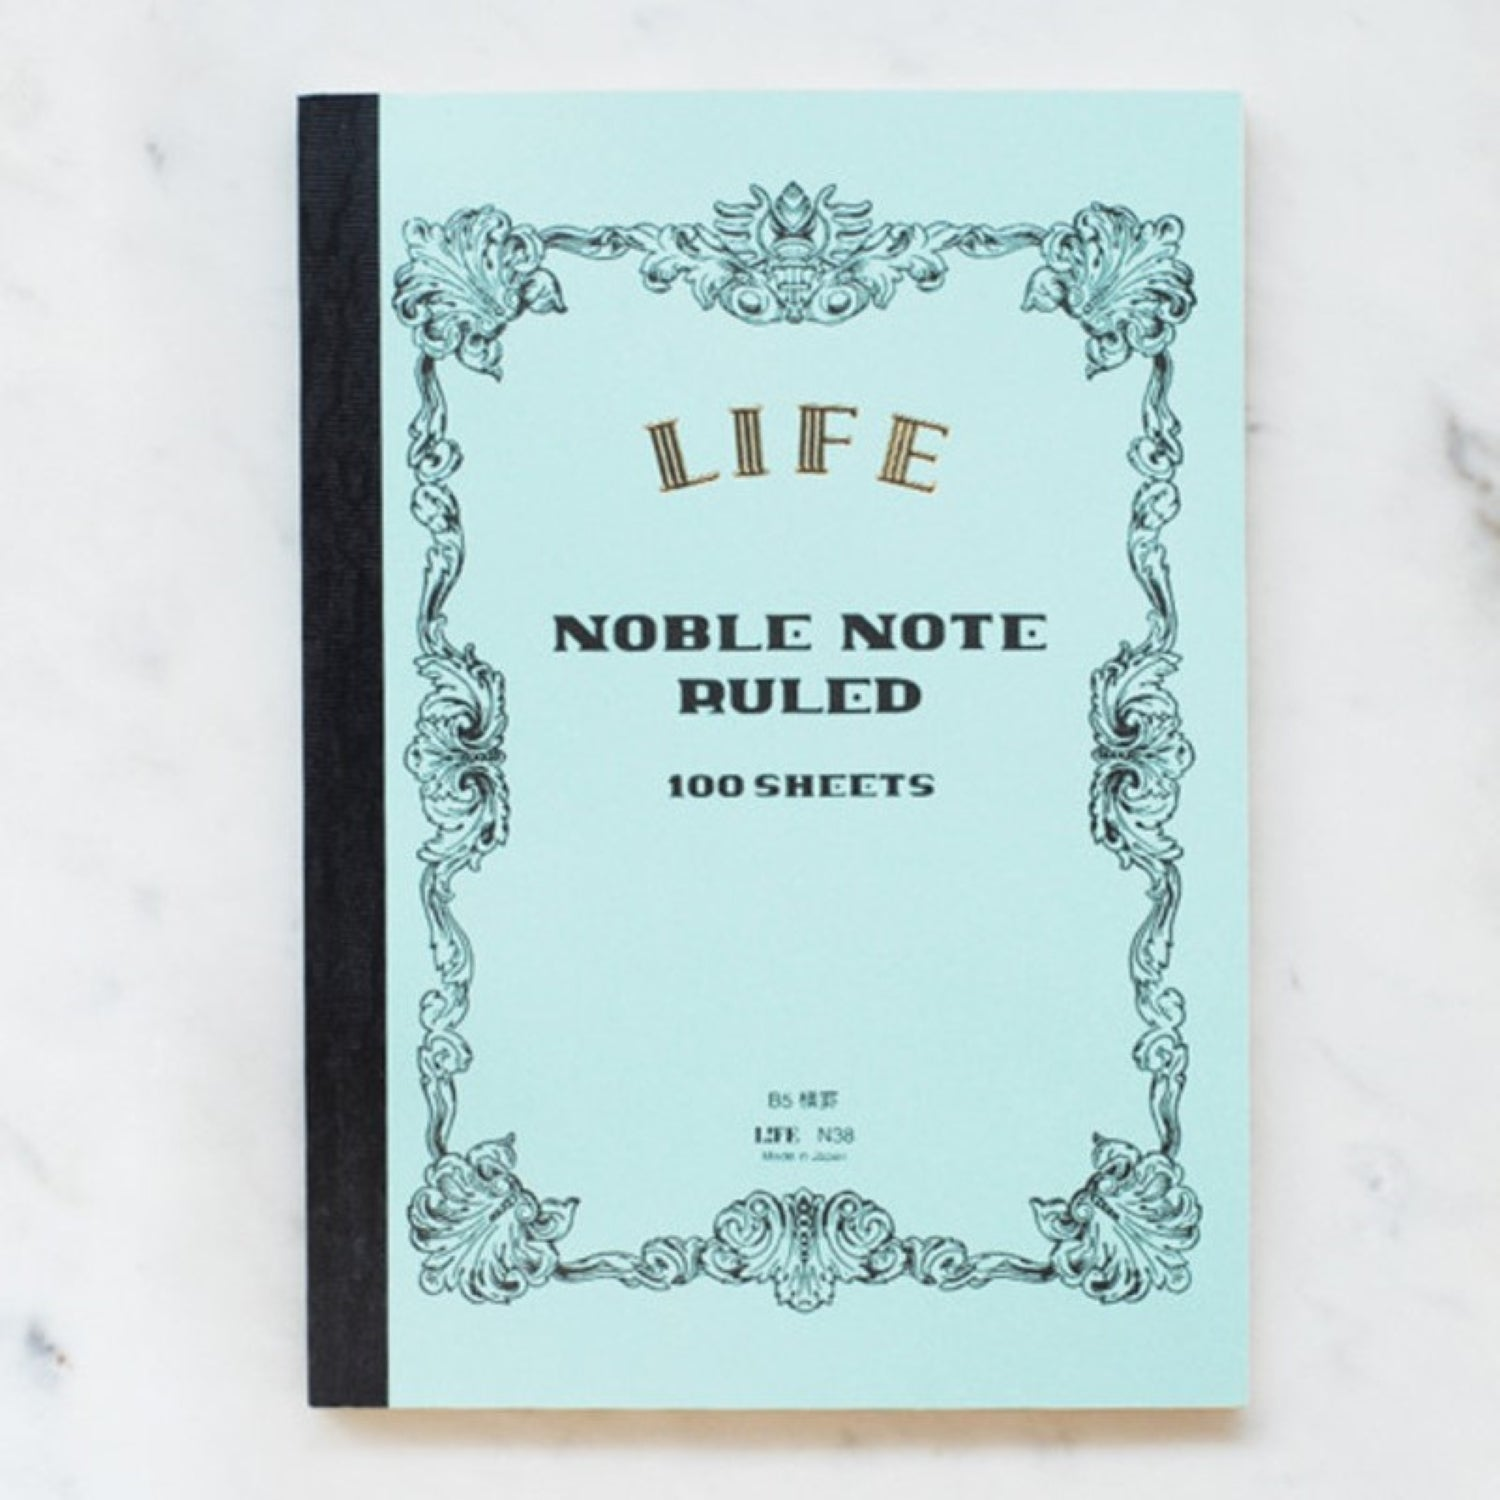 Life Stationery Japanese Paper Noble Note Notebook B5 18x25cm Ruled Light Blue